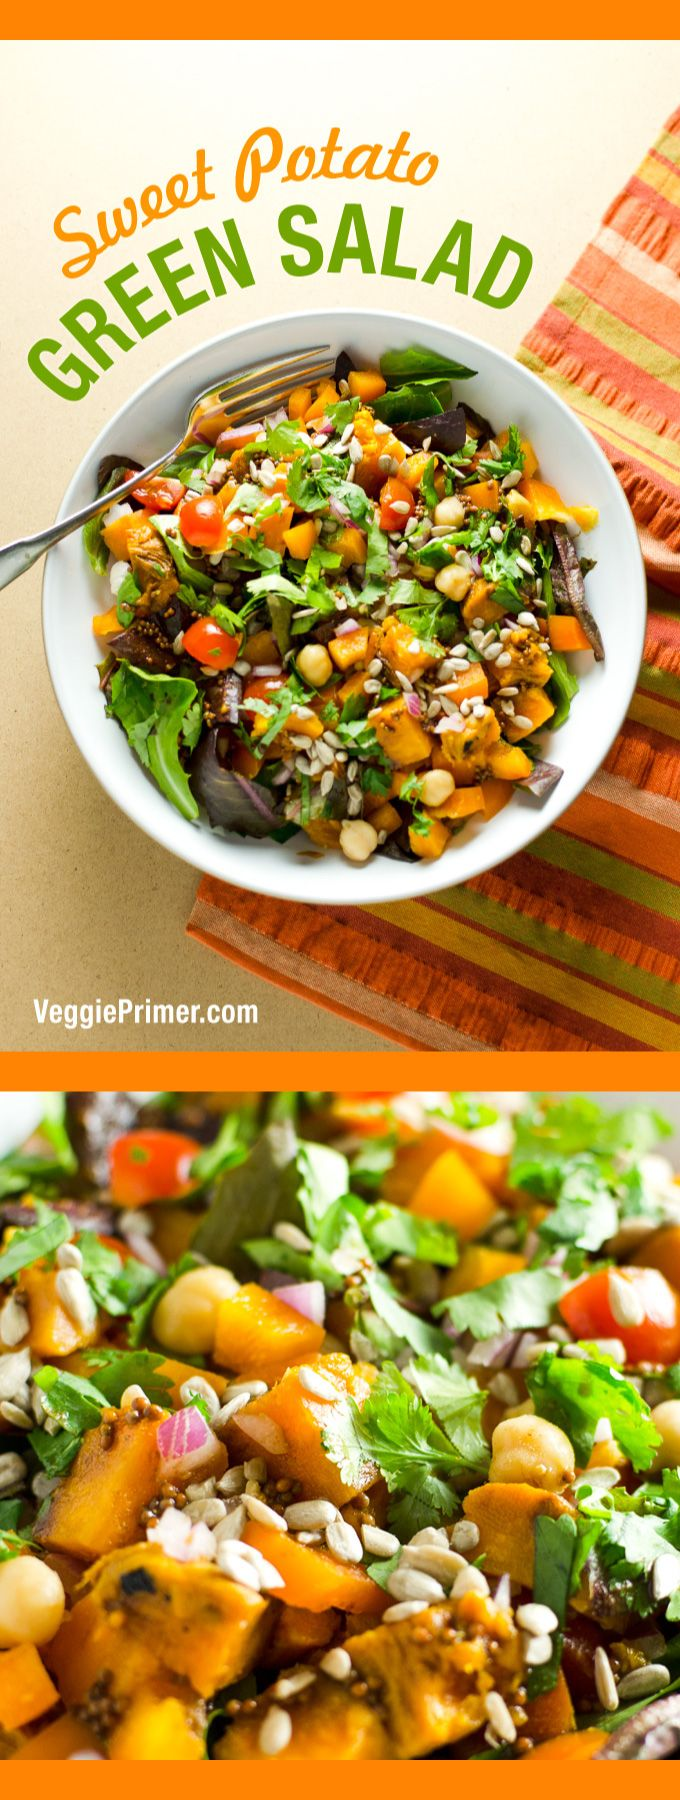 Sweet Potato Green Salad - makes a delicious vegan and gluten free main meal or side dish   VeggiePrimer.com